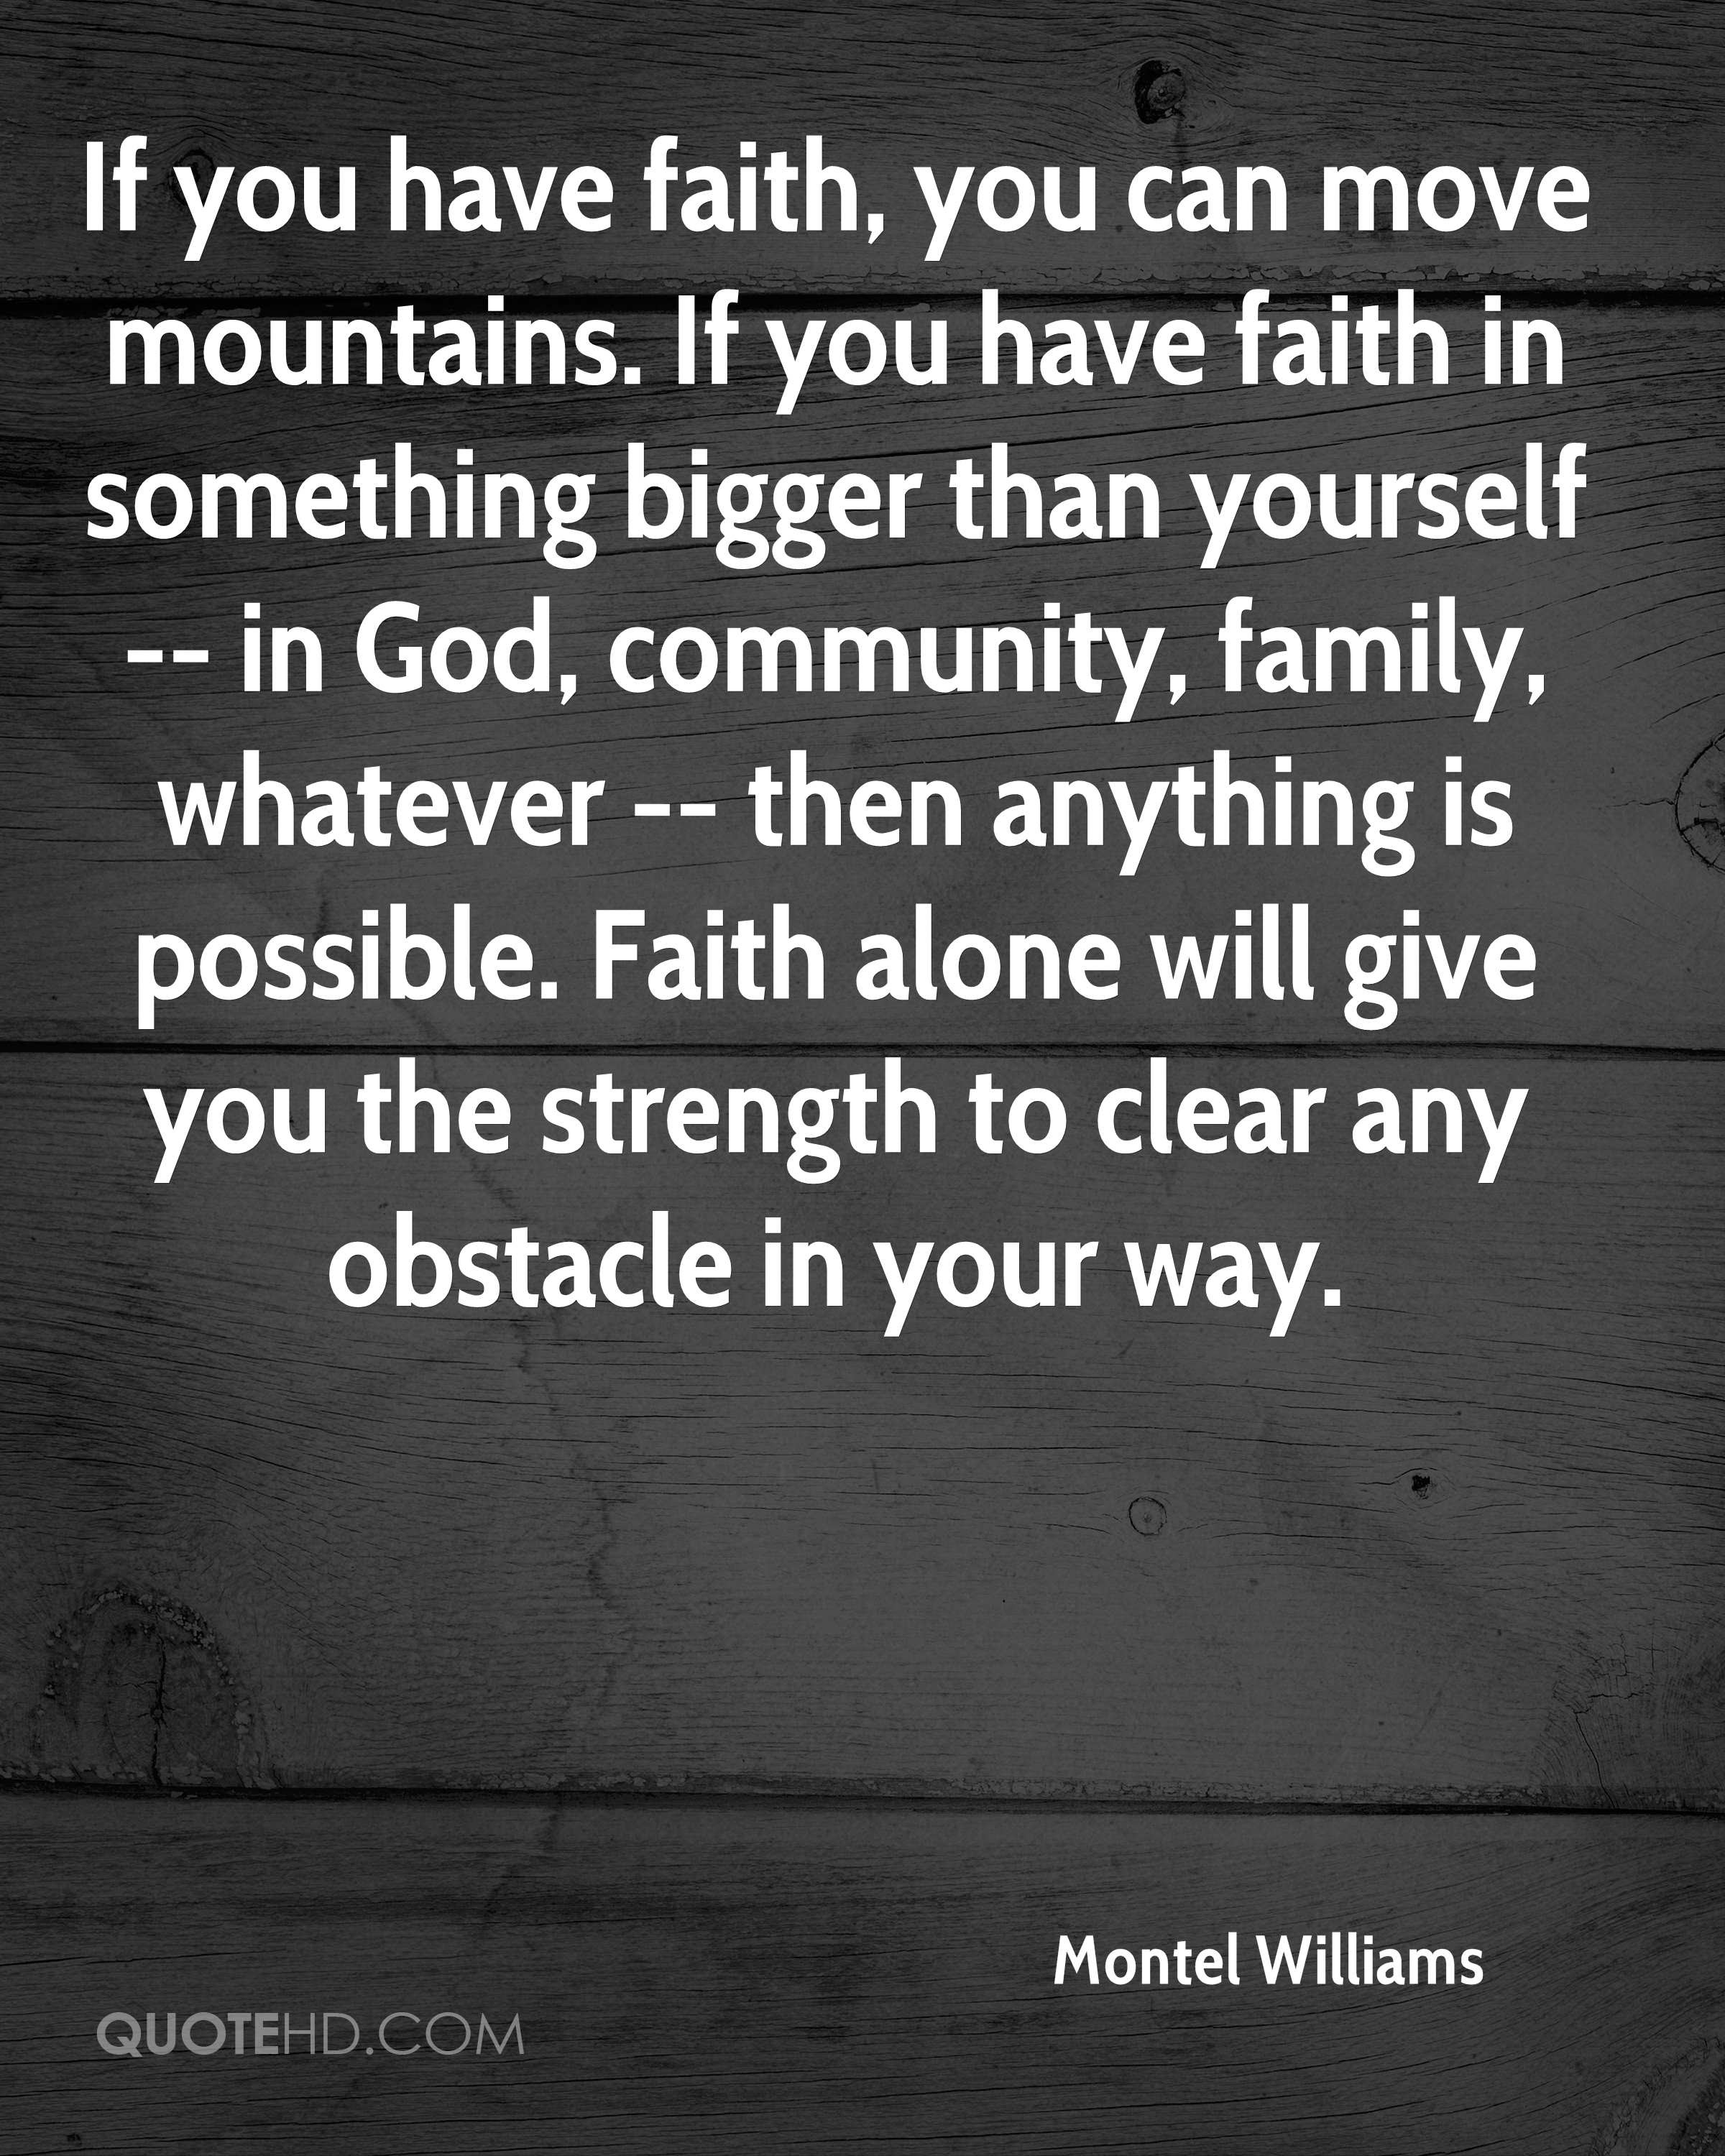 Montel Williams Faith Quotes Quotehd